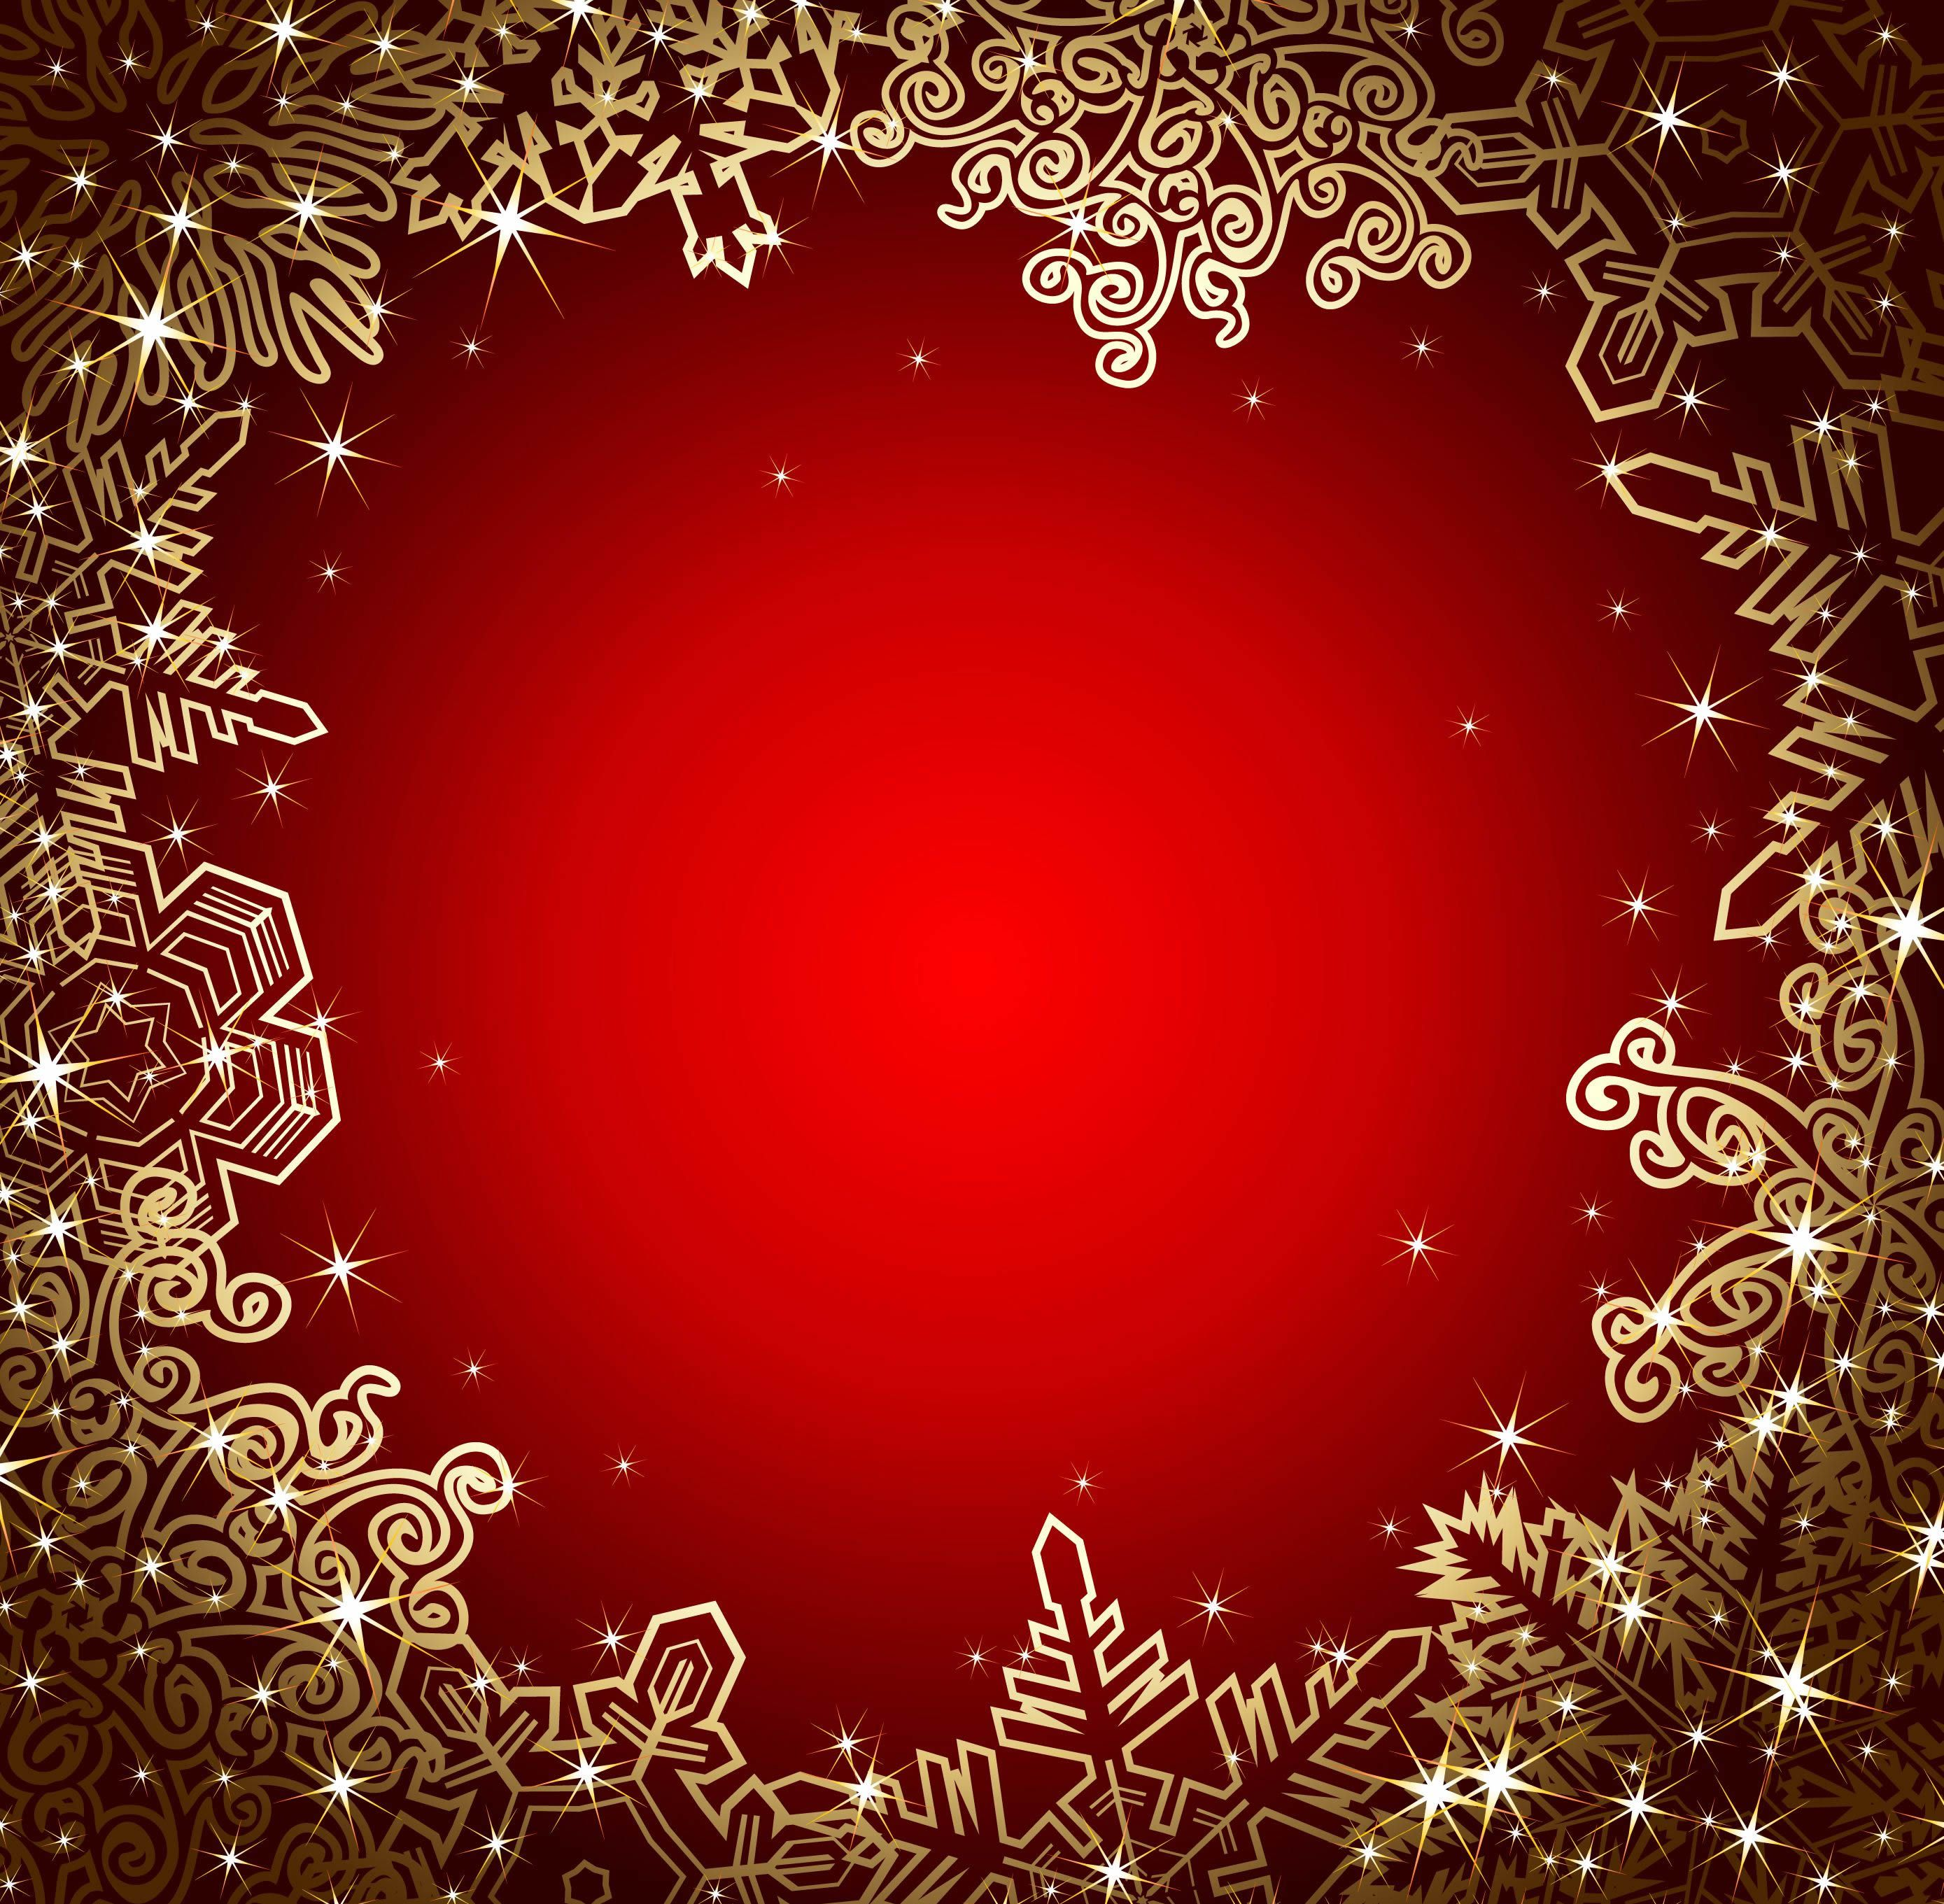 textures new year christmas texture christmas and new year texture background